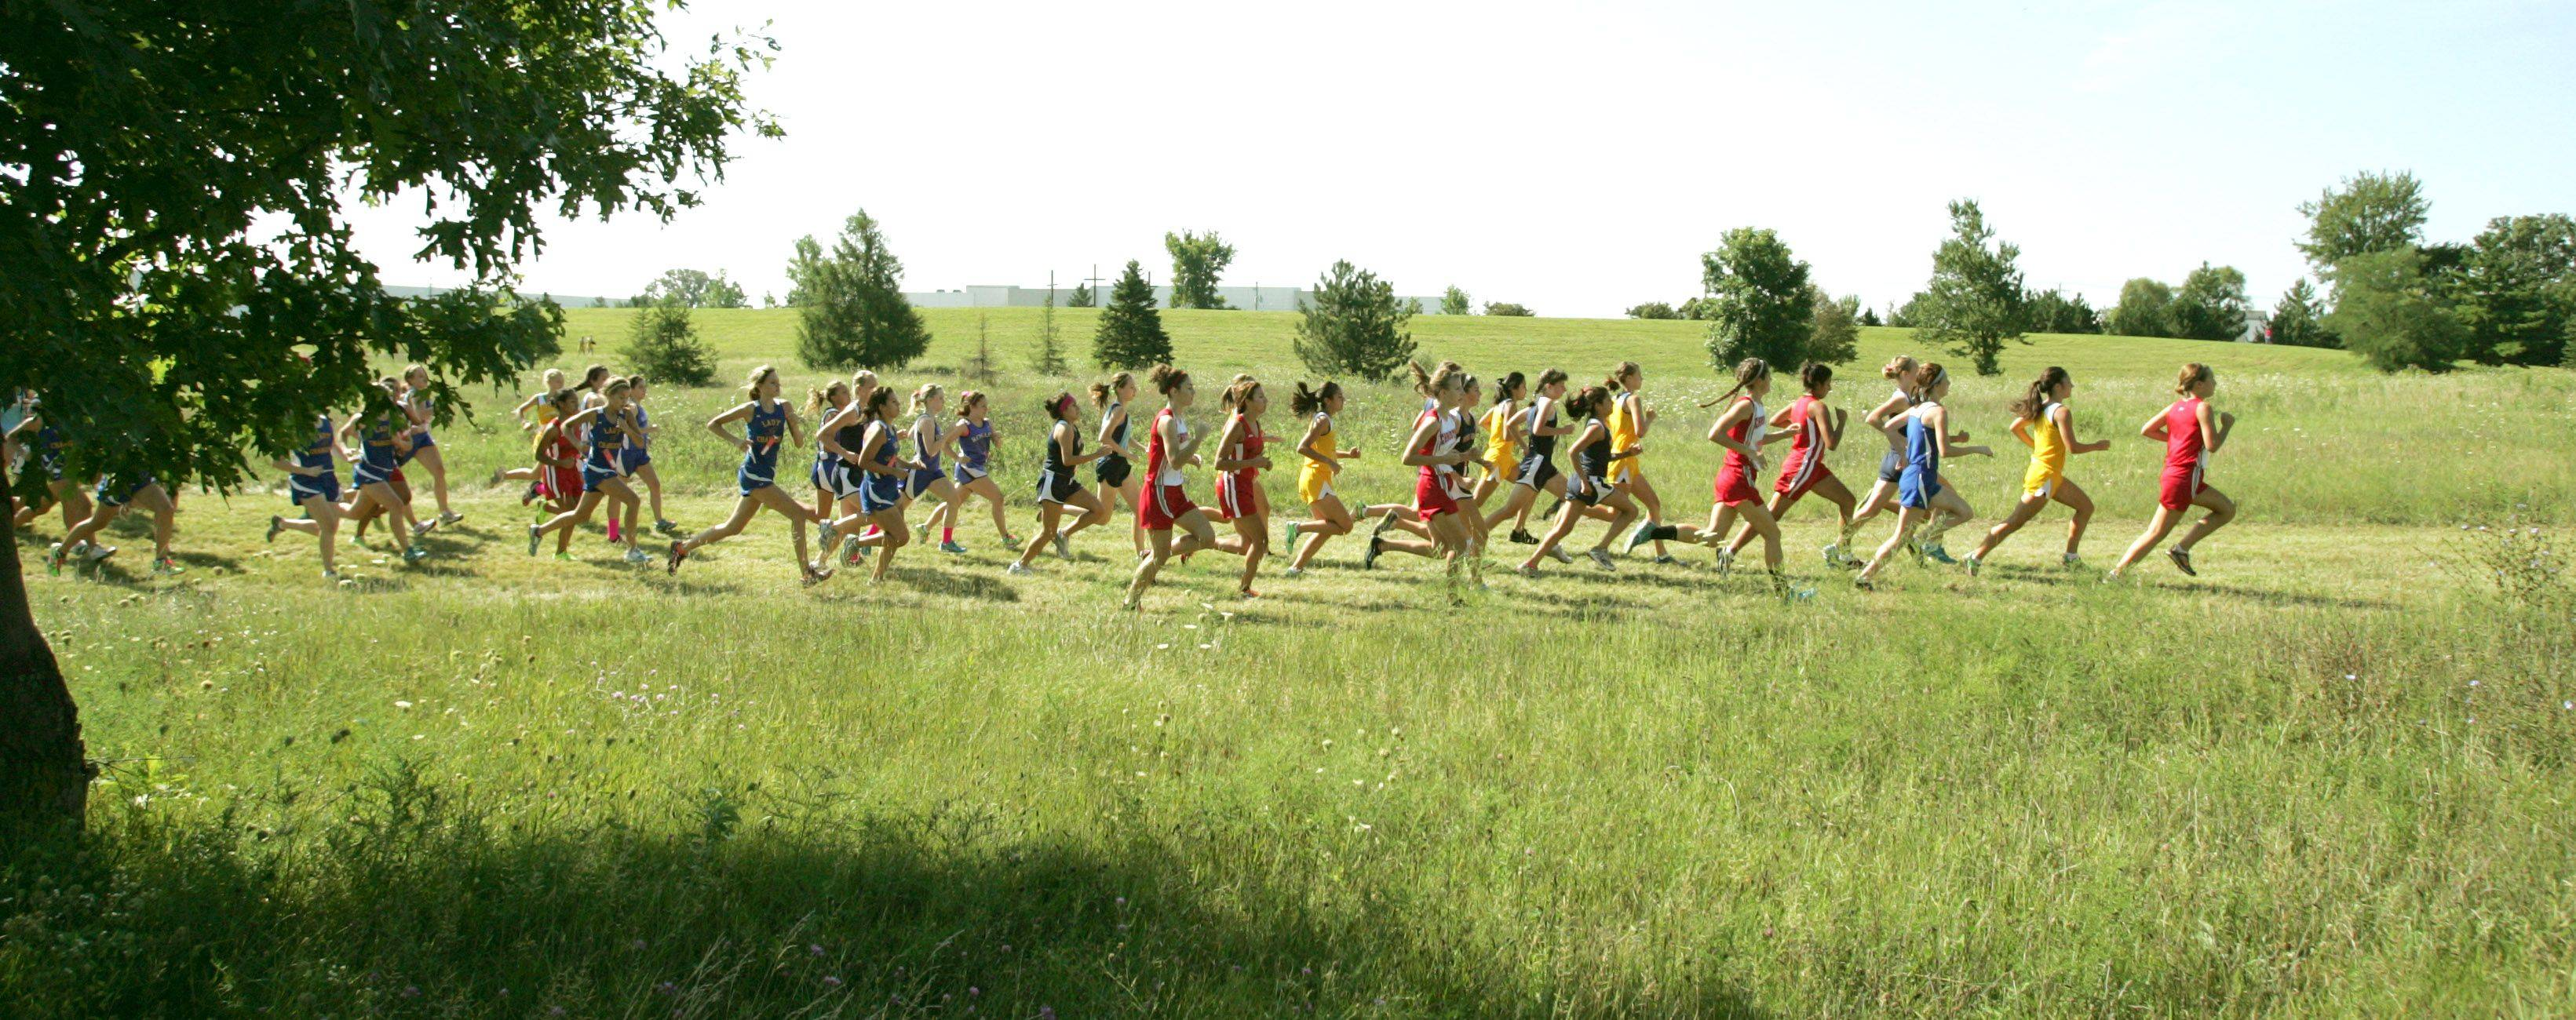 Runners fight for position during the first 200 yards of the girls cross country meet at Marmion High School.